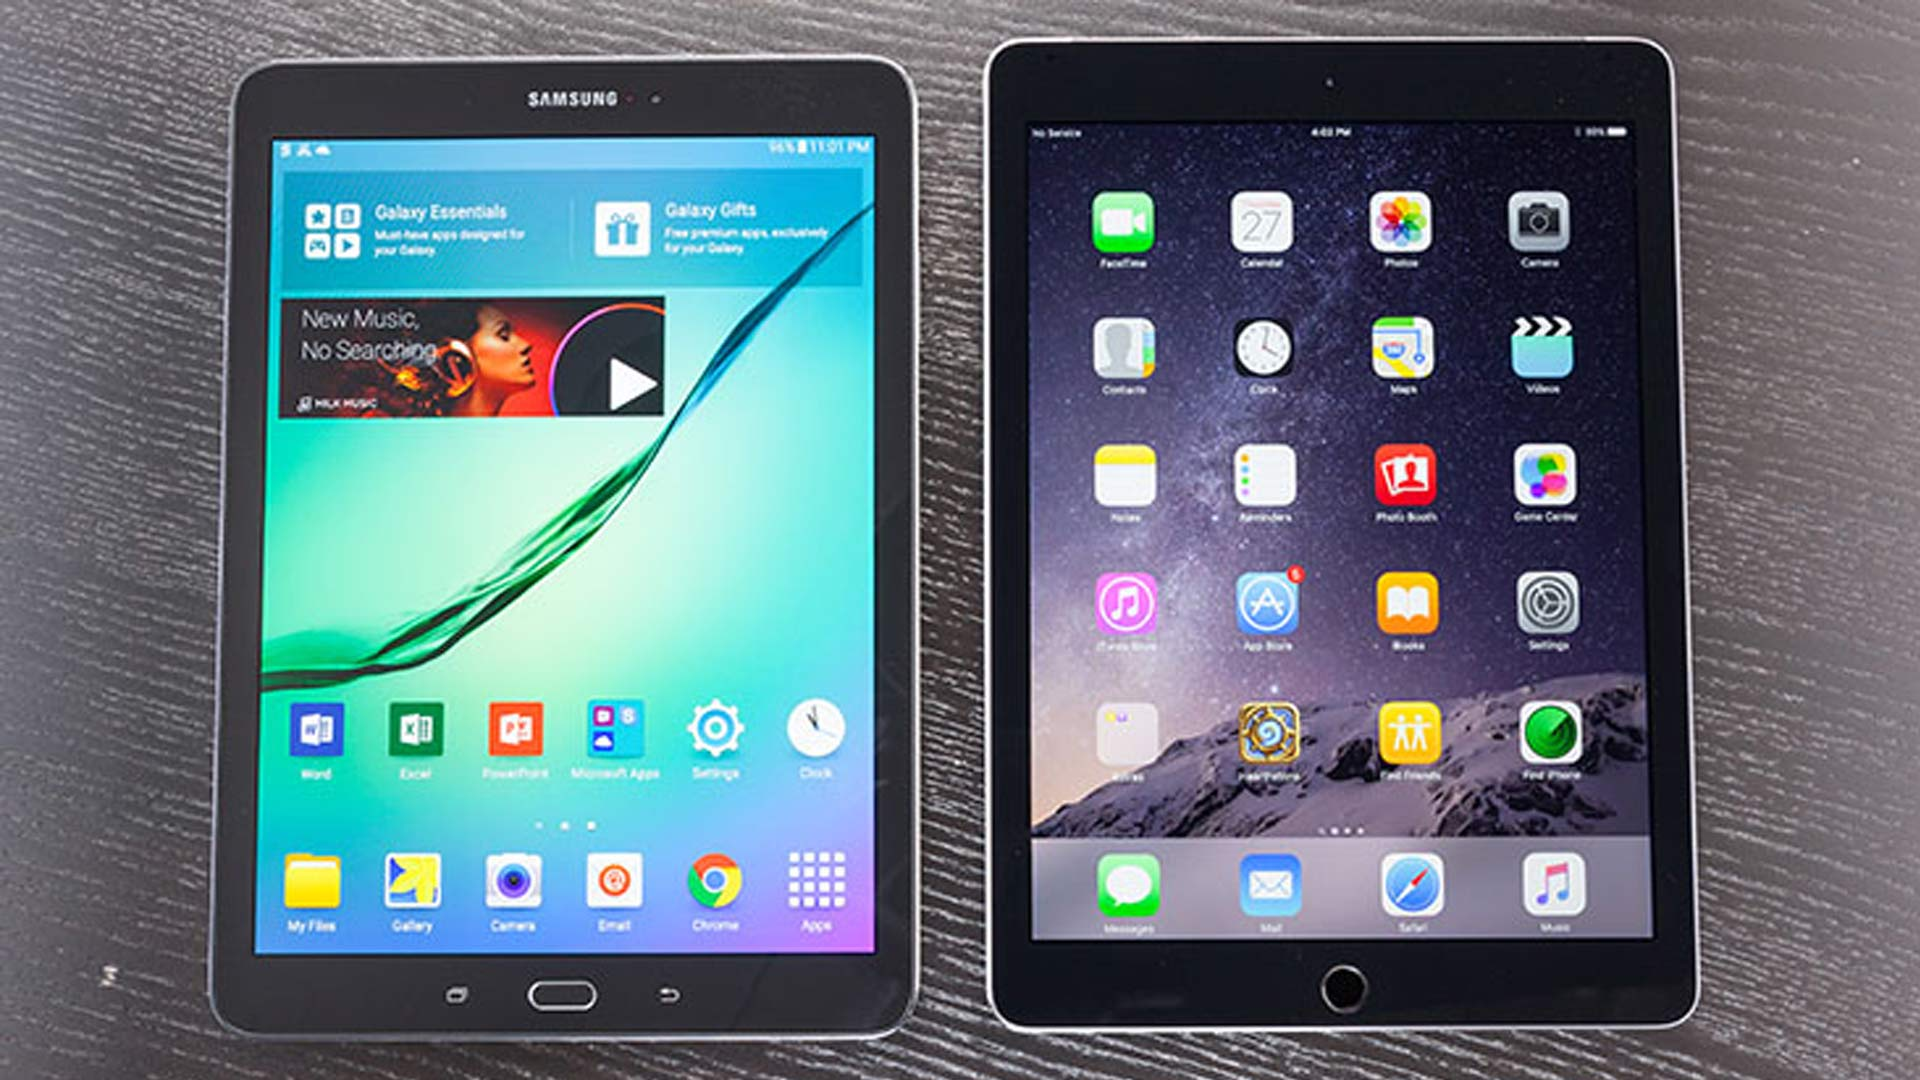 Ipad-Air-2-vs-Samsung-Galaxy-Tab-S2